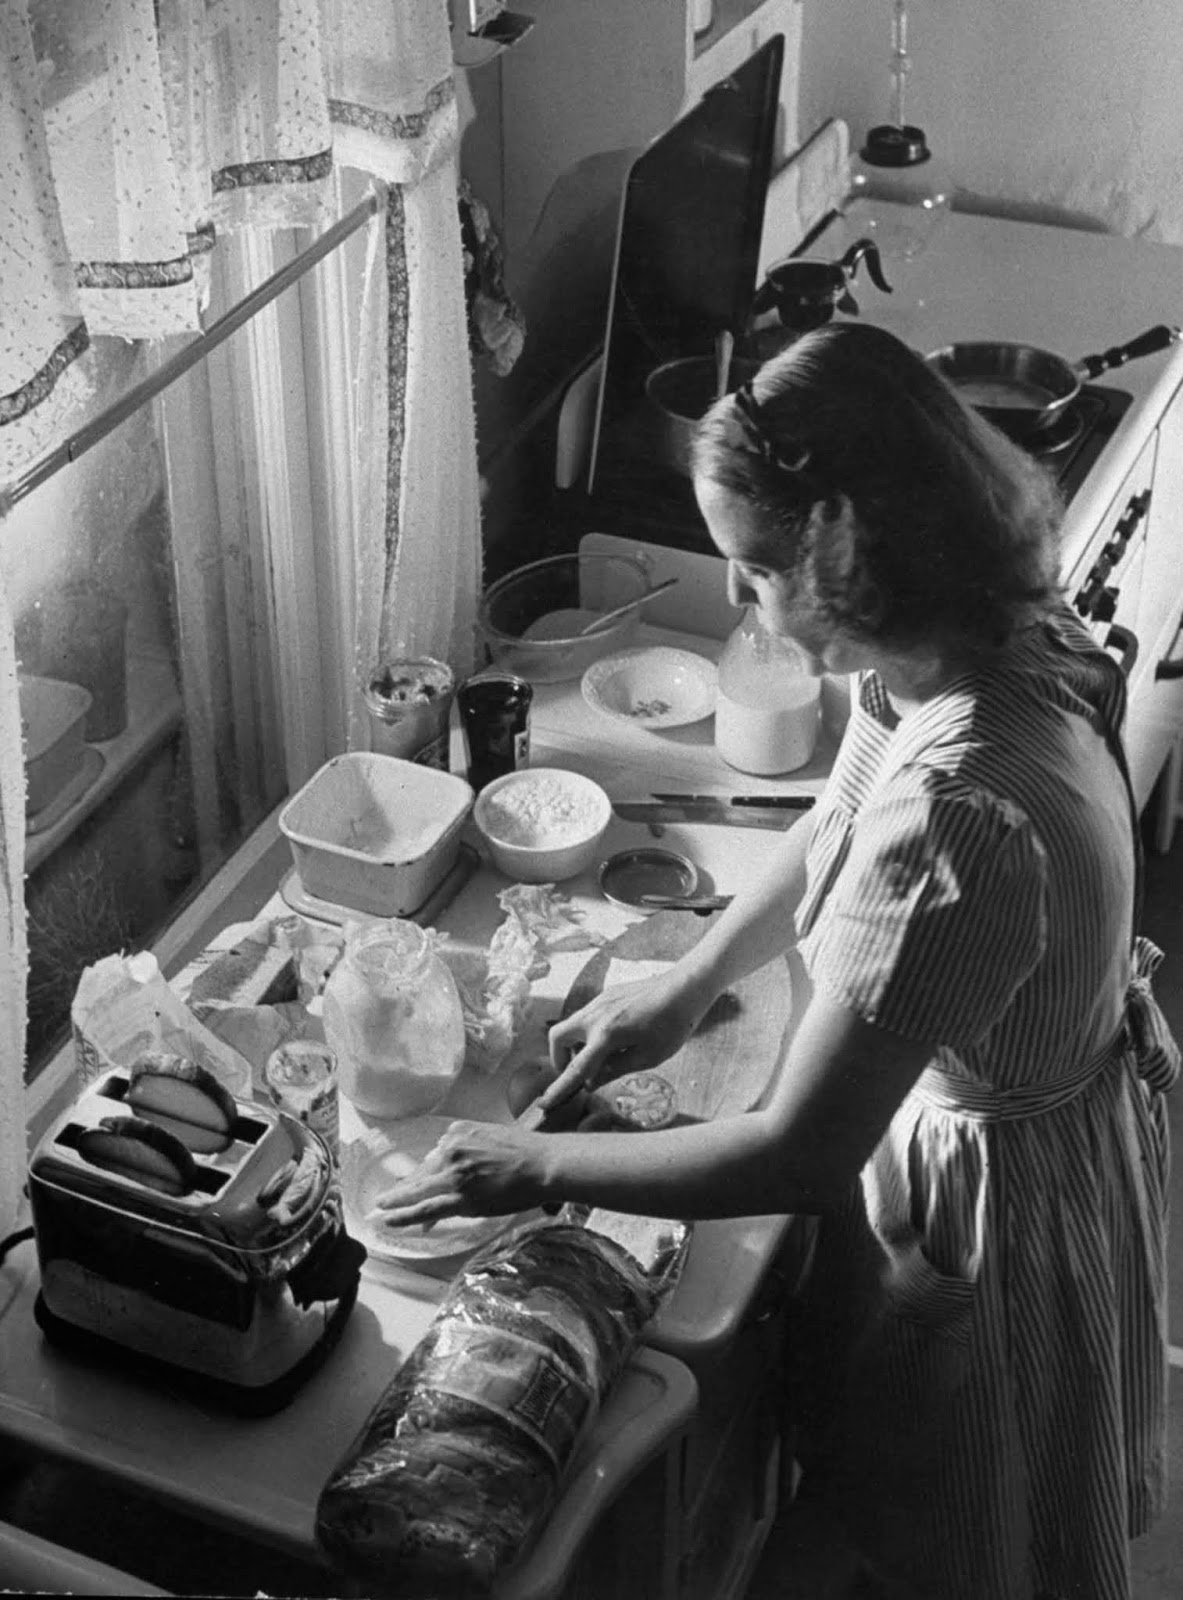 Jane using pop-up toaster, as she makes sandwiches for her three children.